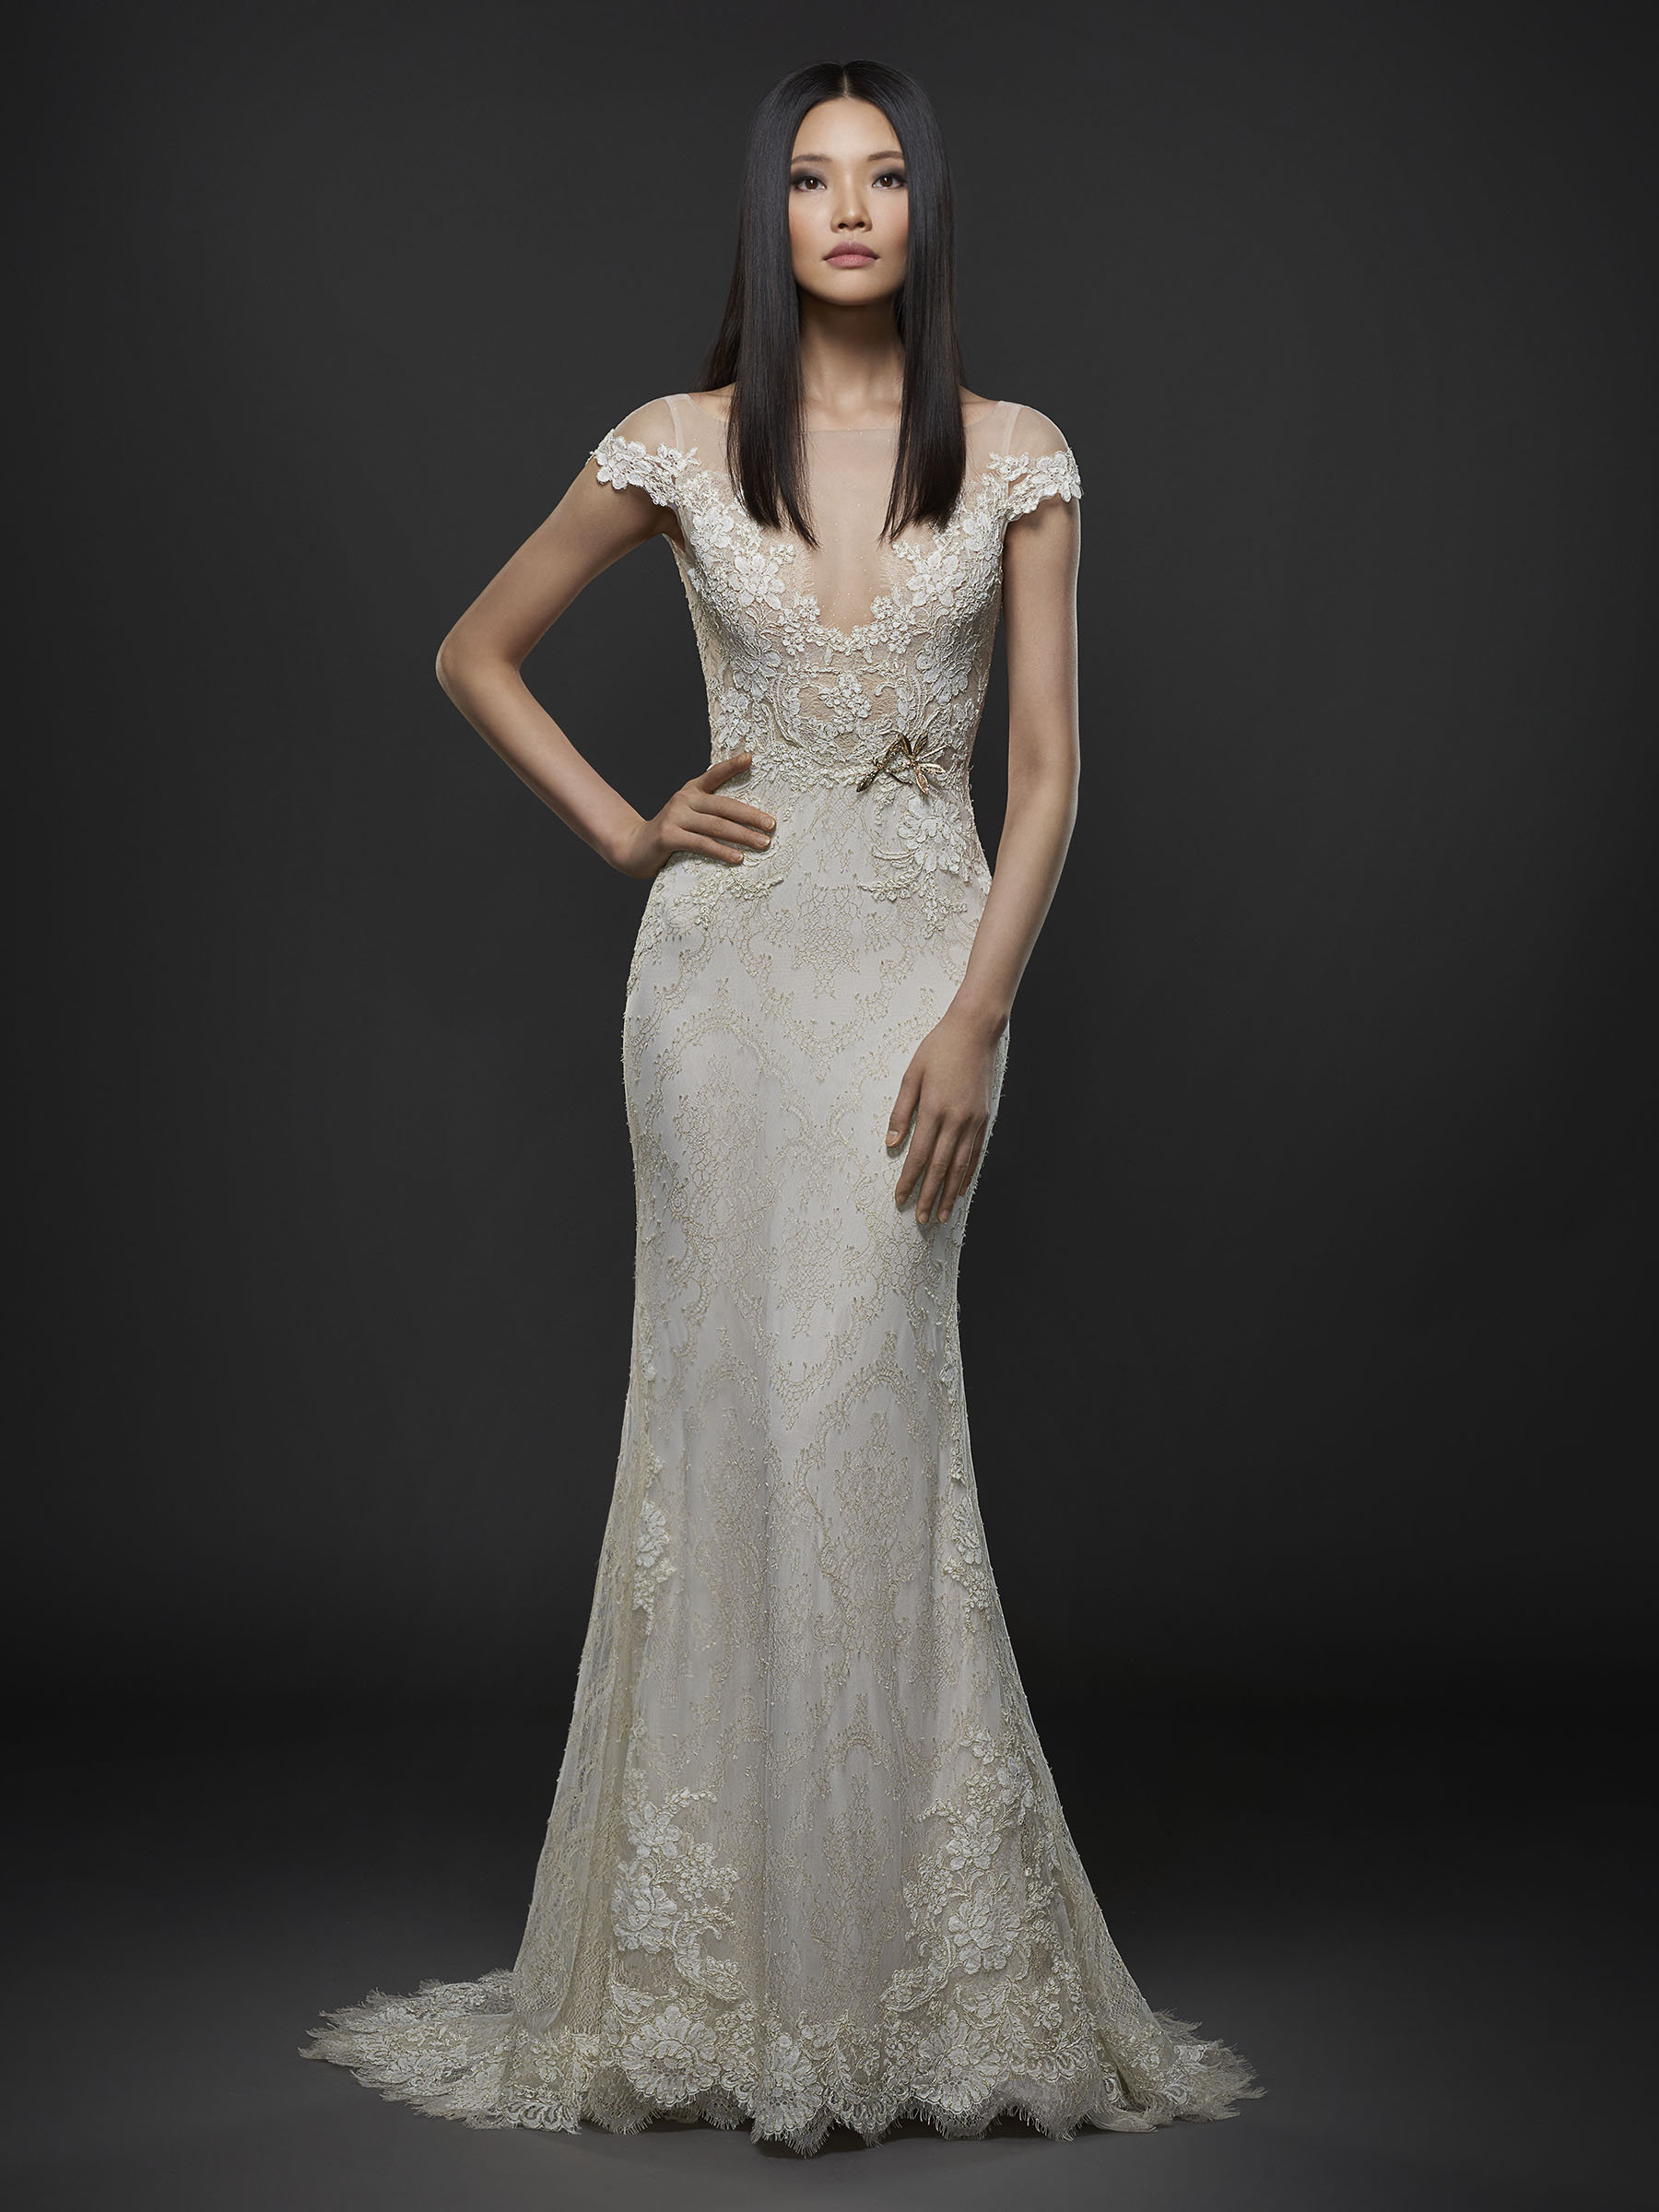 Bridal Gowns and Wedding Dresses by JLM Couture - Style 3763